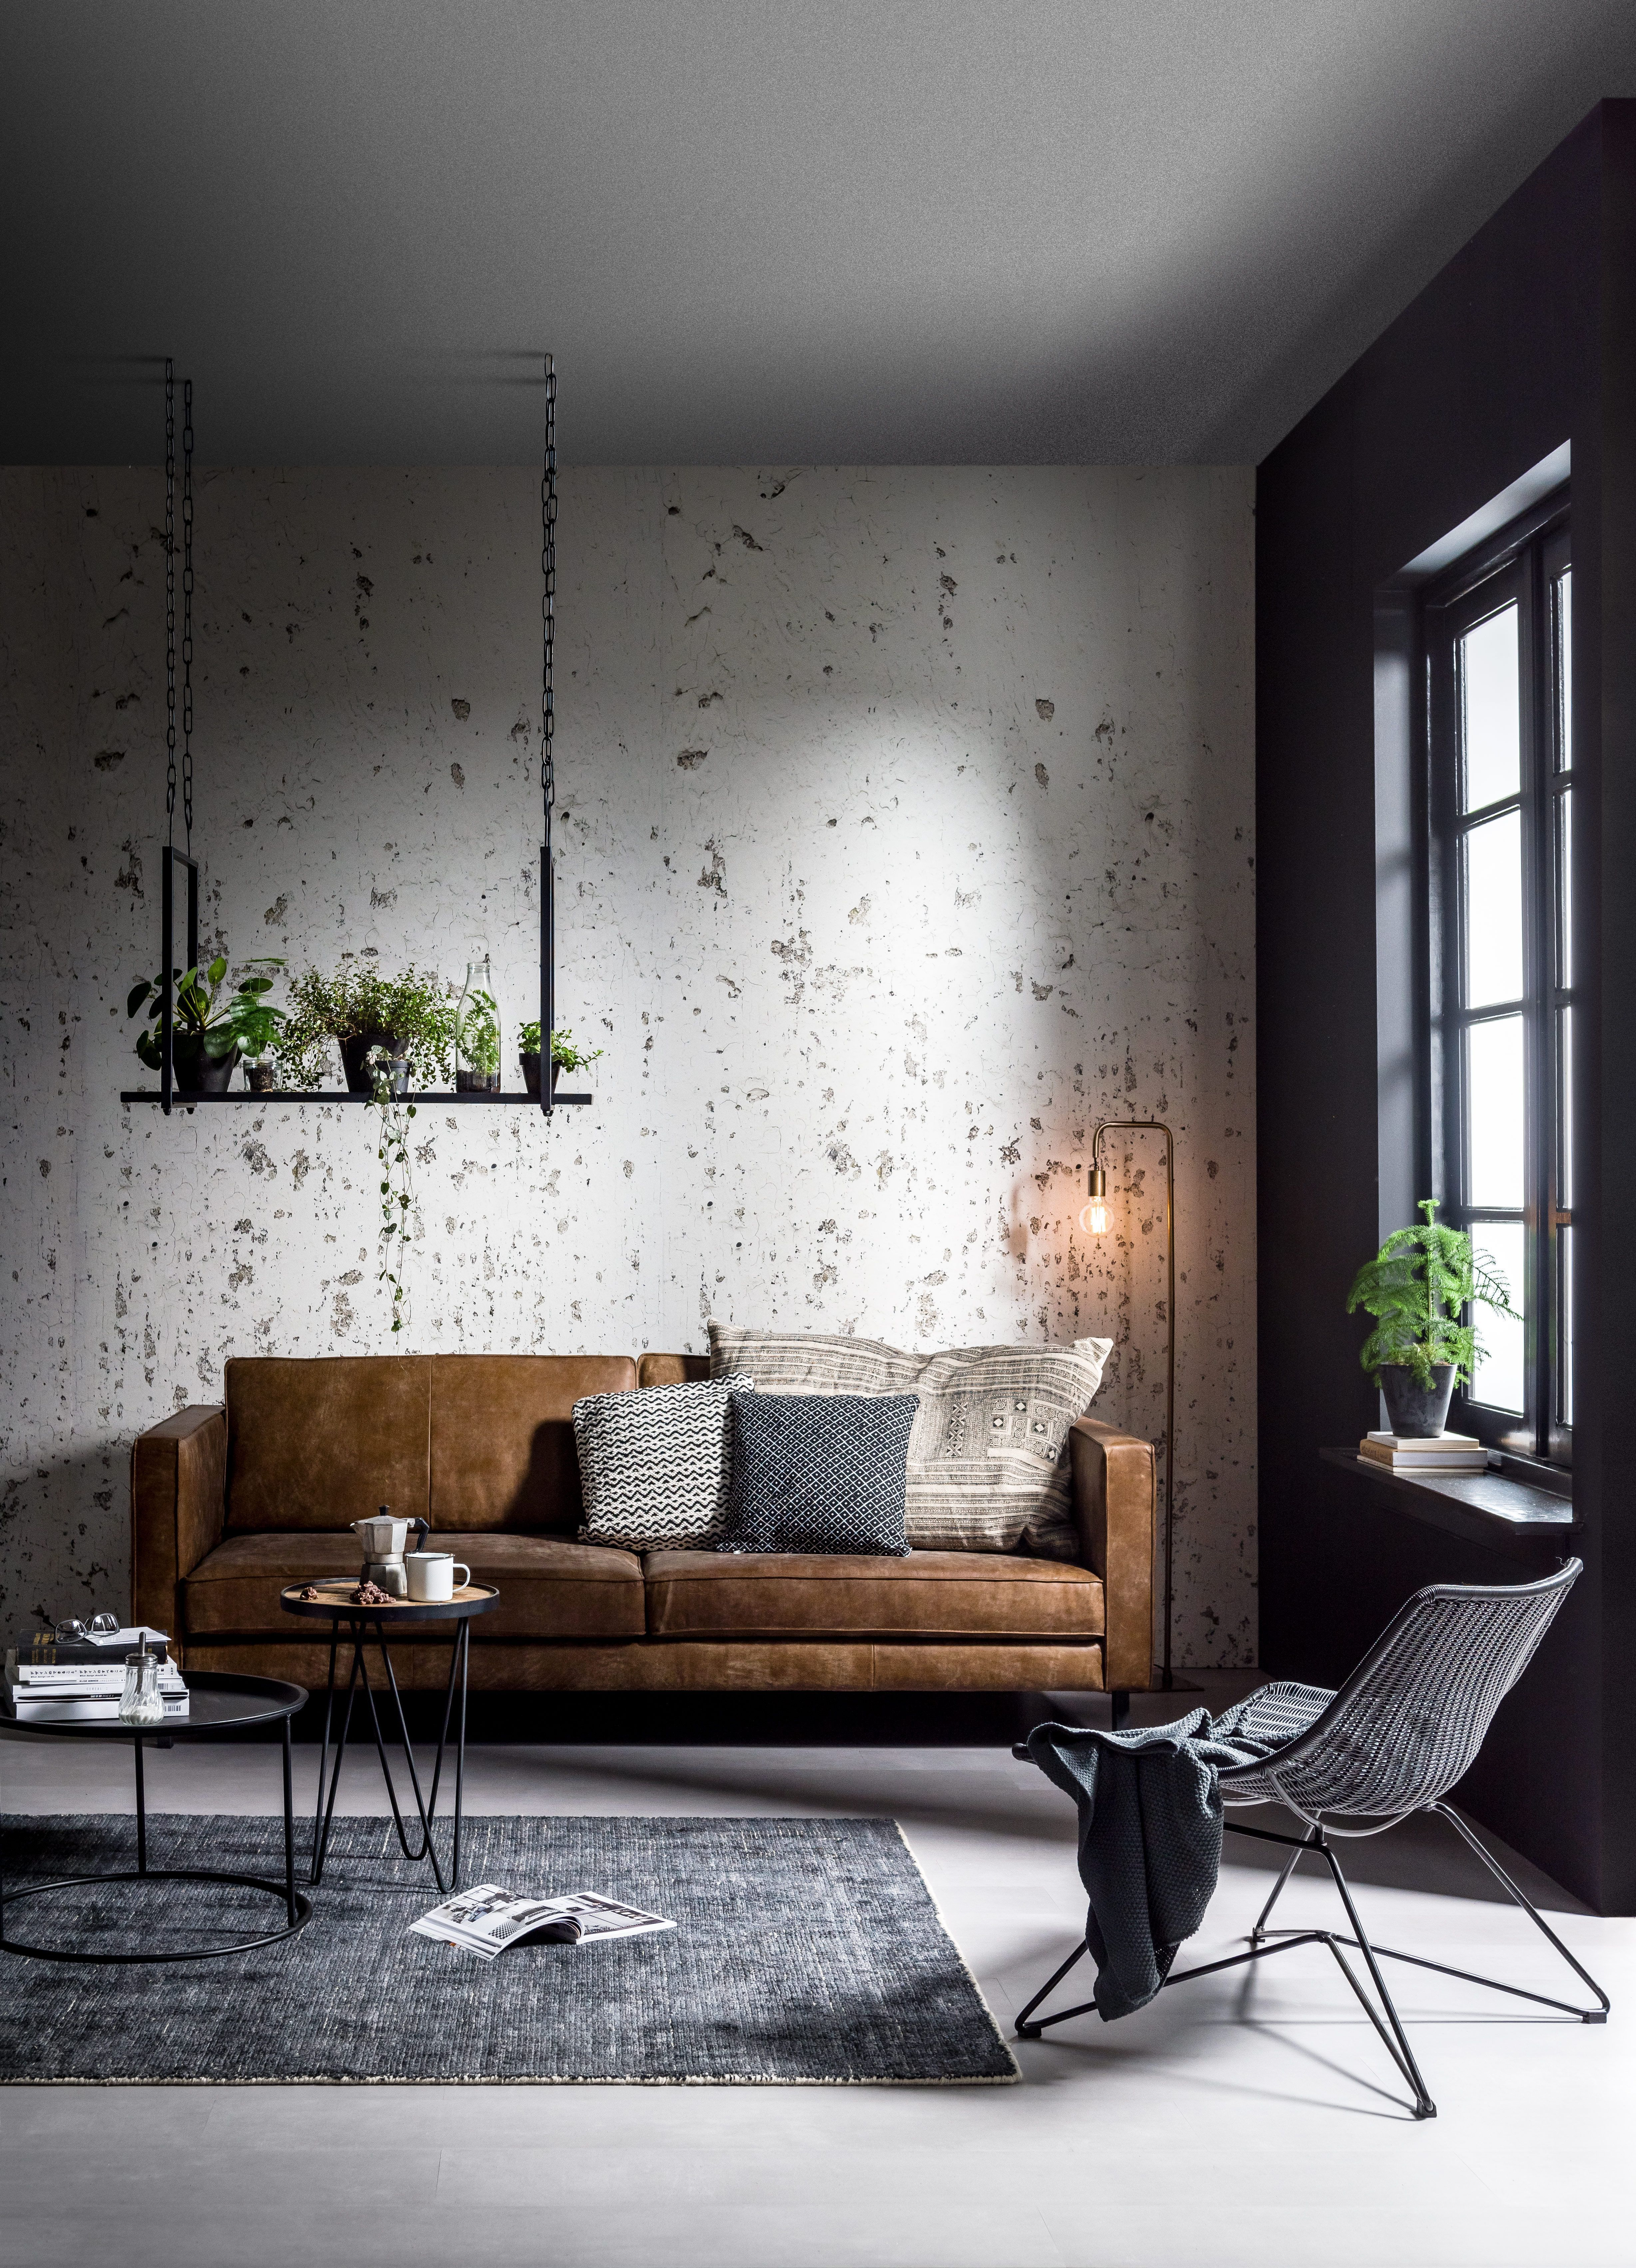 11 Clever Concepts Of How To Makeover Industrial Living Room Ideas Hav In 2020 Modern Industrial Living Room Industrial Style Living Room Industrial Living Room Design